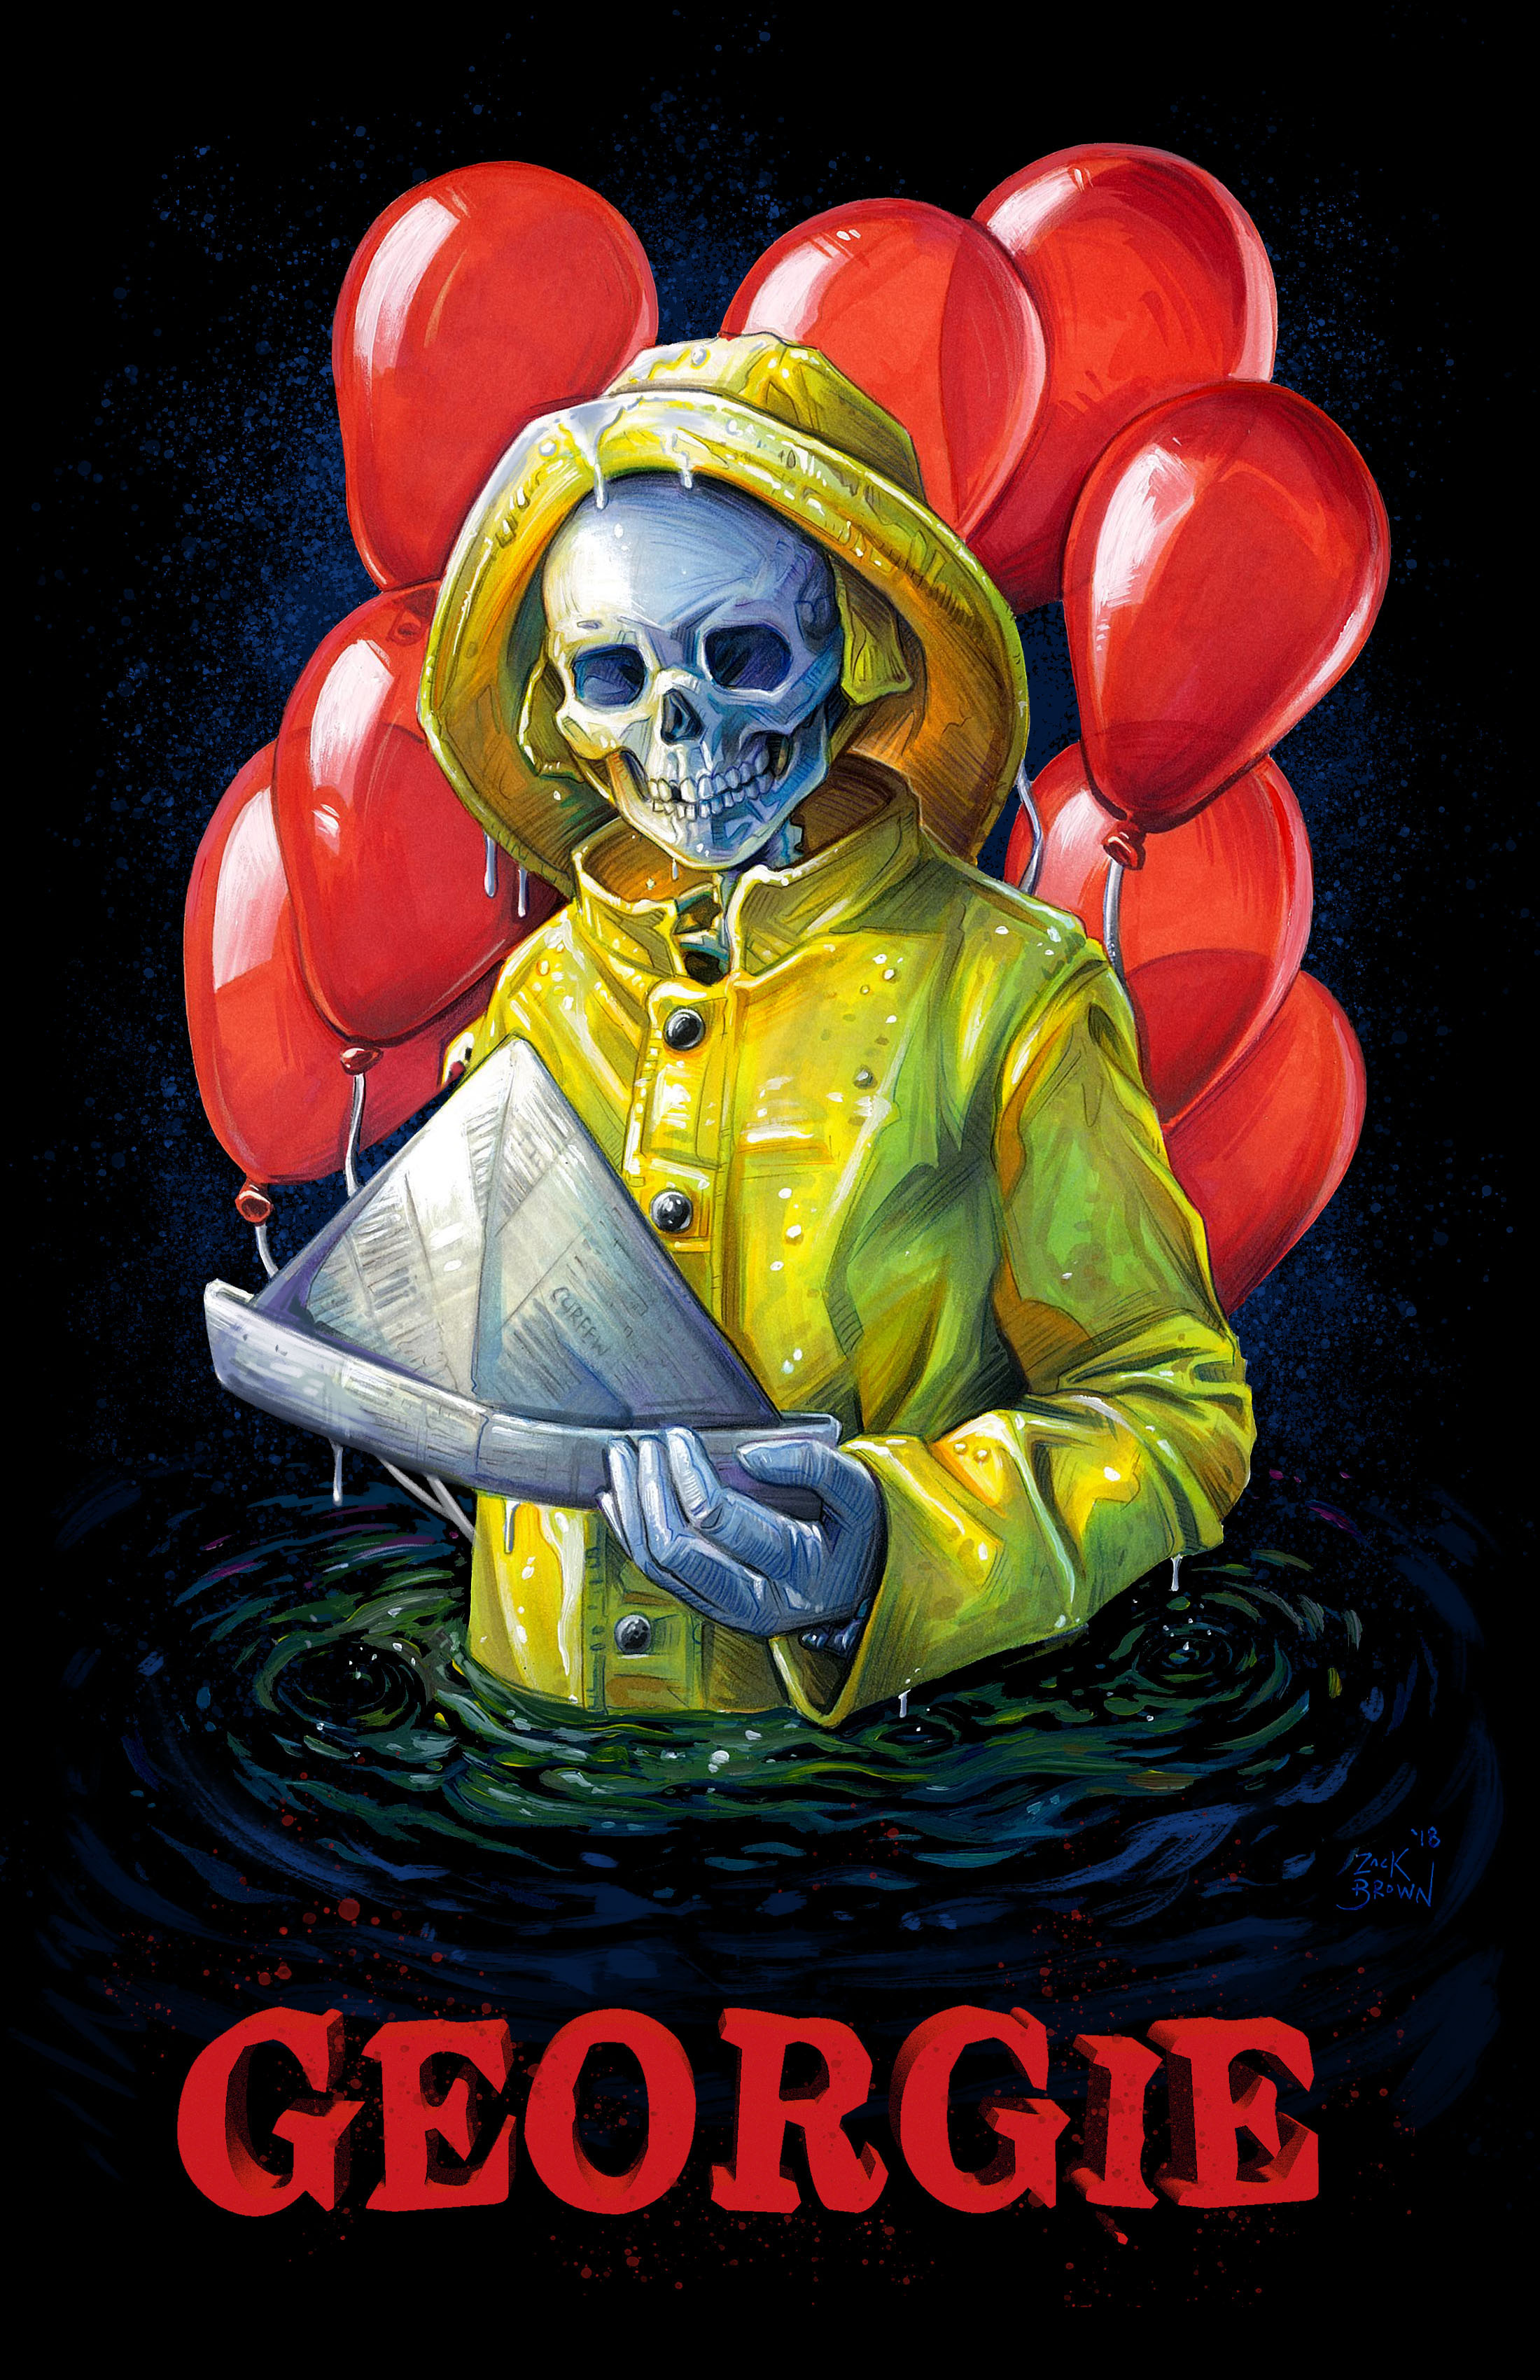 """Original Georgie From """"IT"""" Returns For Unofficial Sequel To 1990 Miniseries!"""